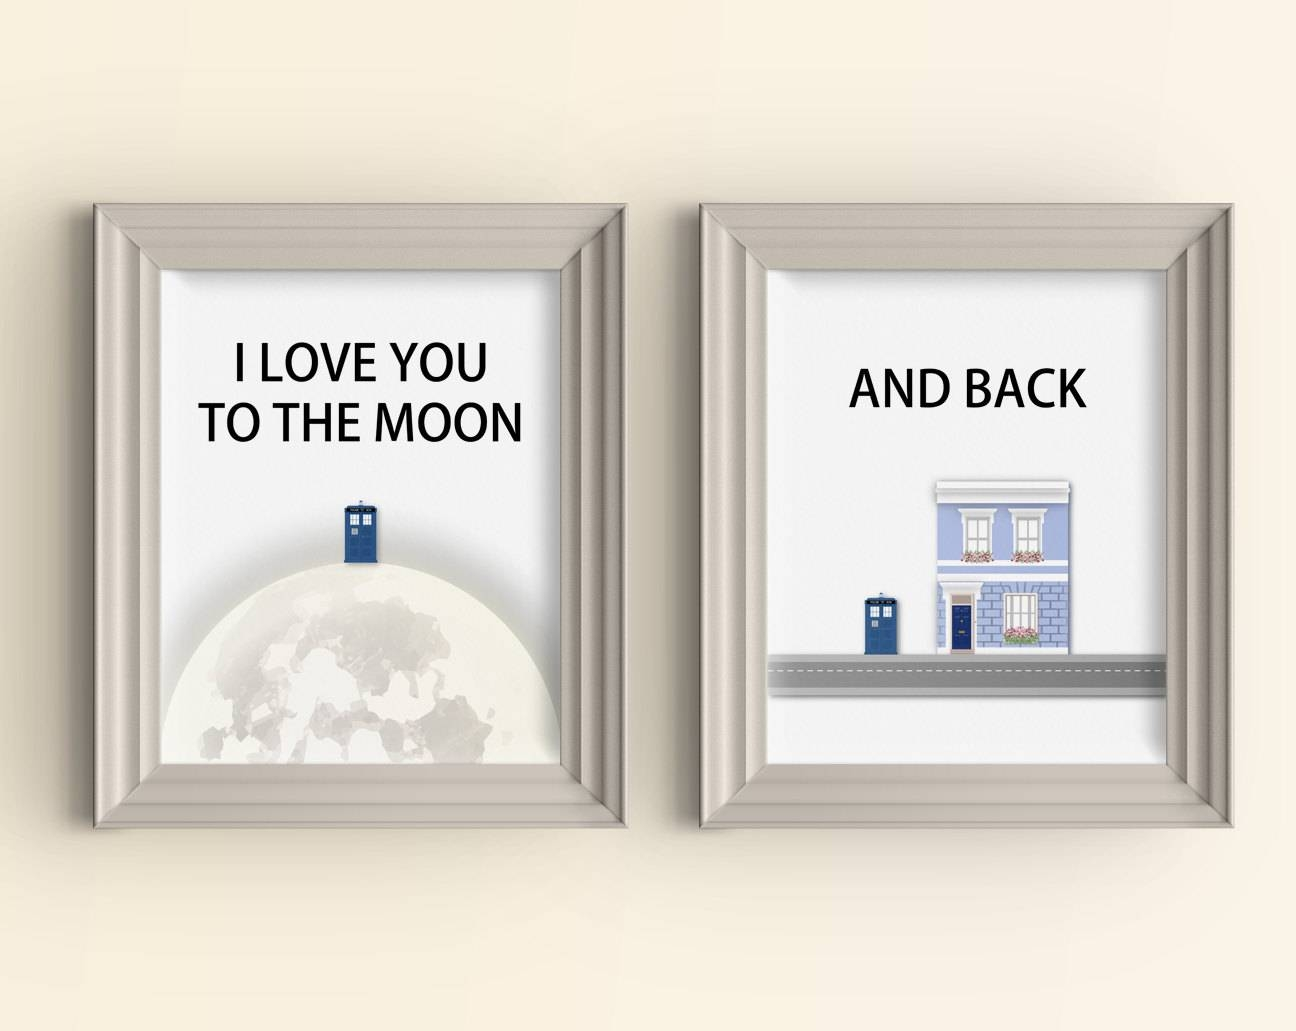 Doctor Who Art Prints Dr Who Whovian Gift Geek Nerd Gift Intended For 2018 Doctor Who Wall Art (View 14 of 33)